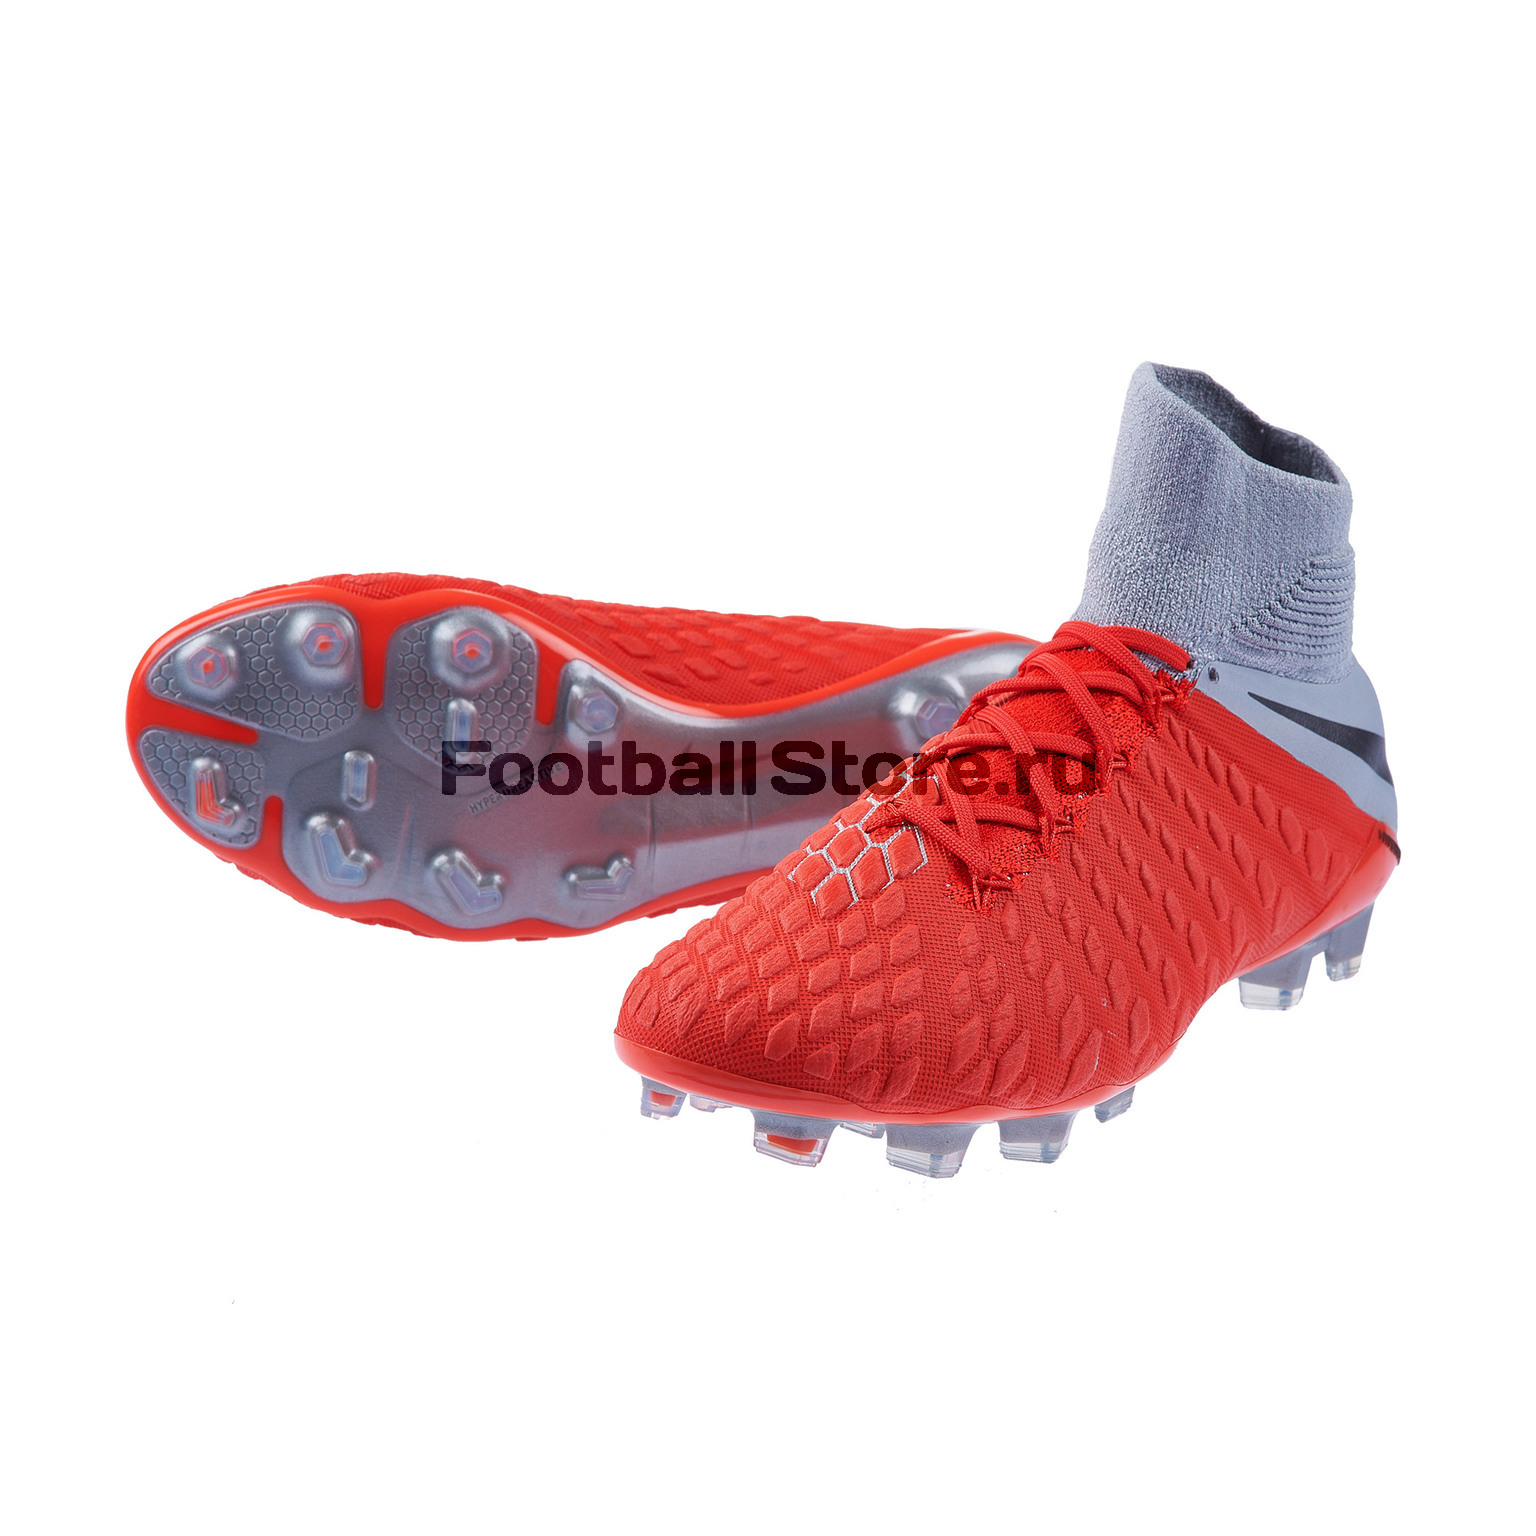 Бутсы Nike Hypervenom 3 Elite DF FG AJ3803-600 lh officer an econometric model of canada under the fluctuating exchange rate